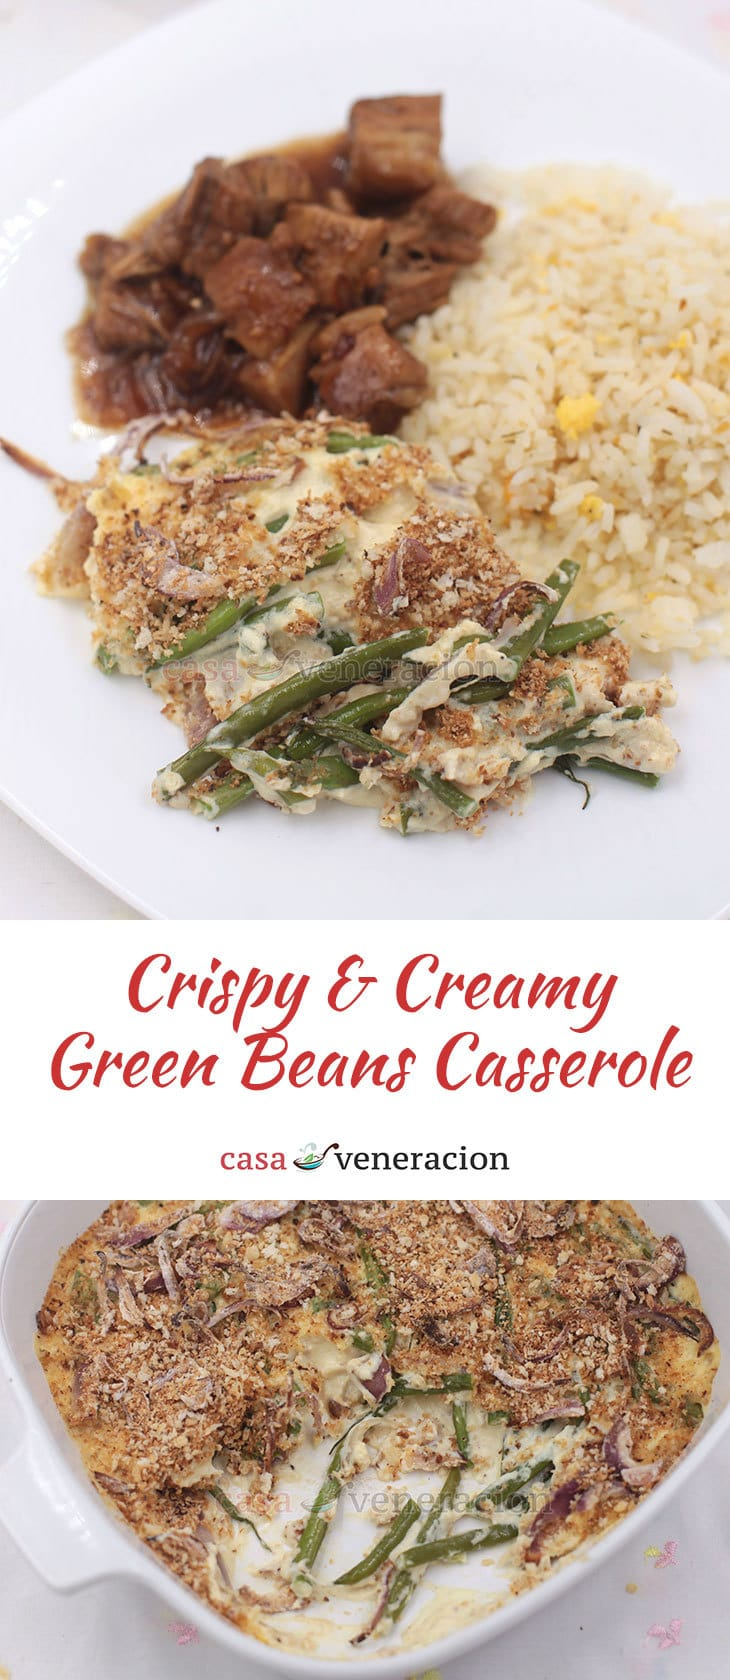 Green beans sauteed in butter are mixed with cream and topped with crispy onions and breadcrumbs. Get the recipe for crispy and creamy green beans casserole!